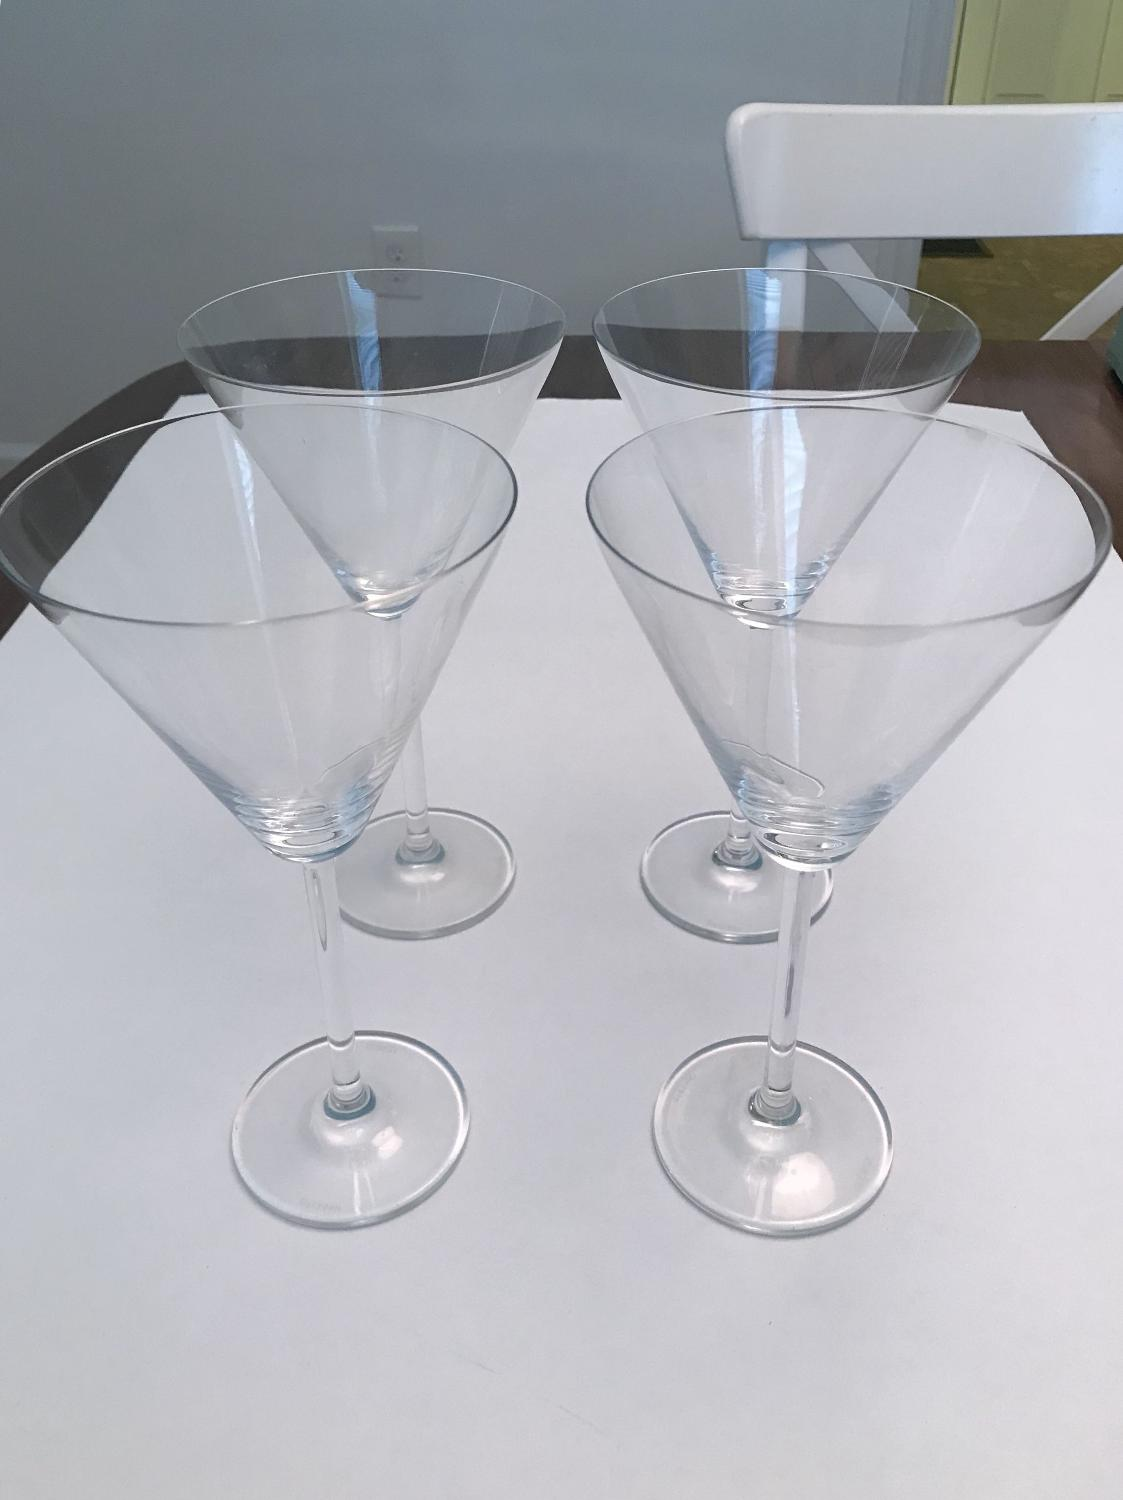 Best Lenox Oxygen Martini Glasses (set Of 4) for sale in Richmond ...